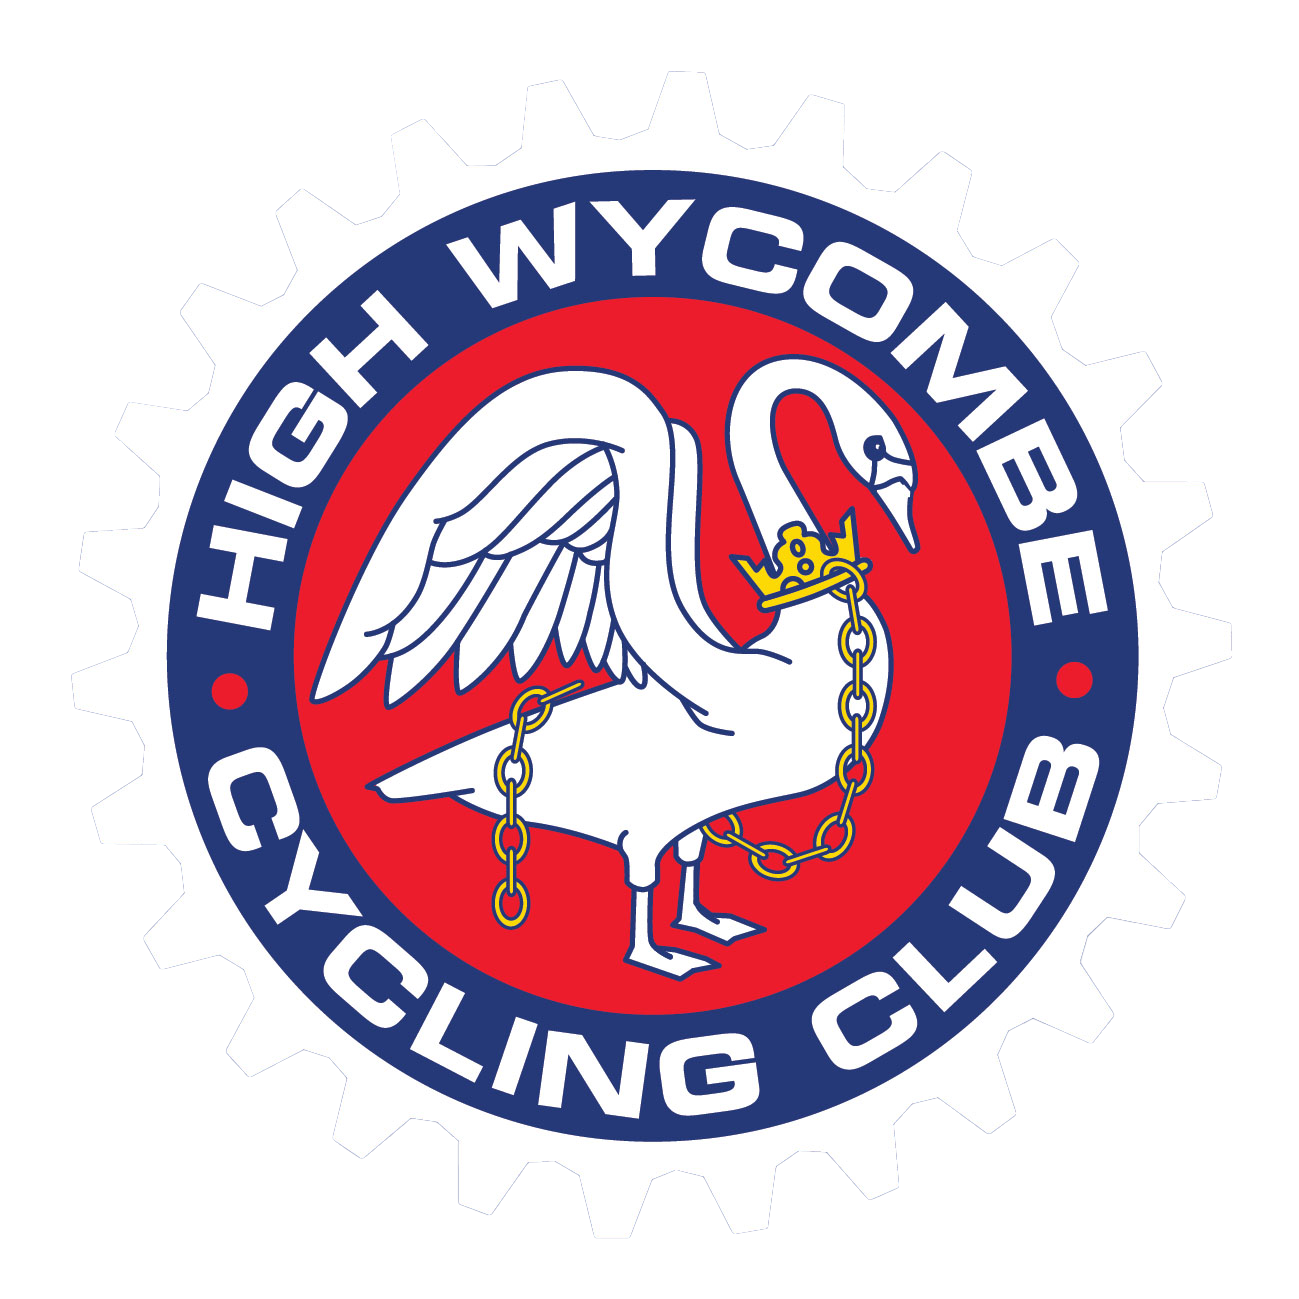 High Wycombe Cycling Club